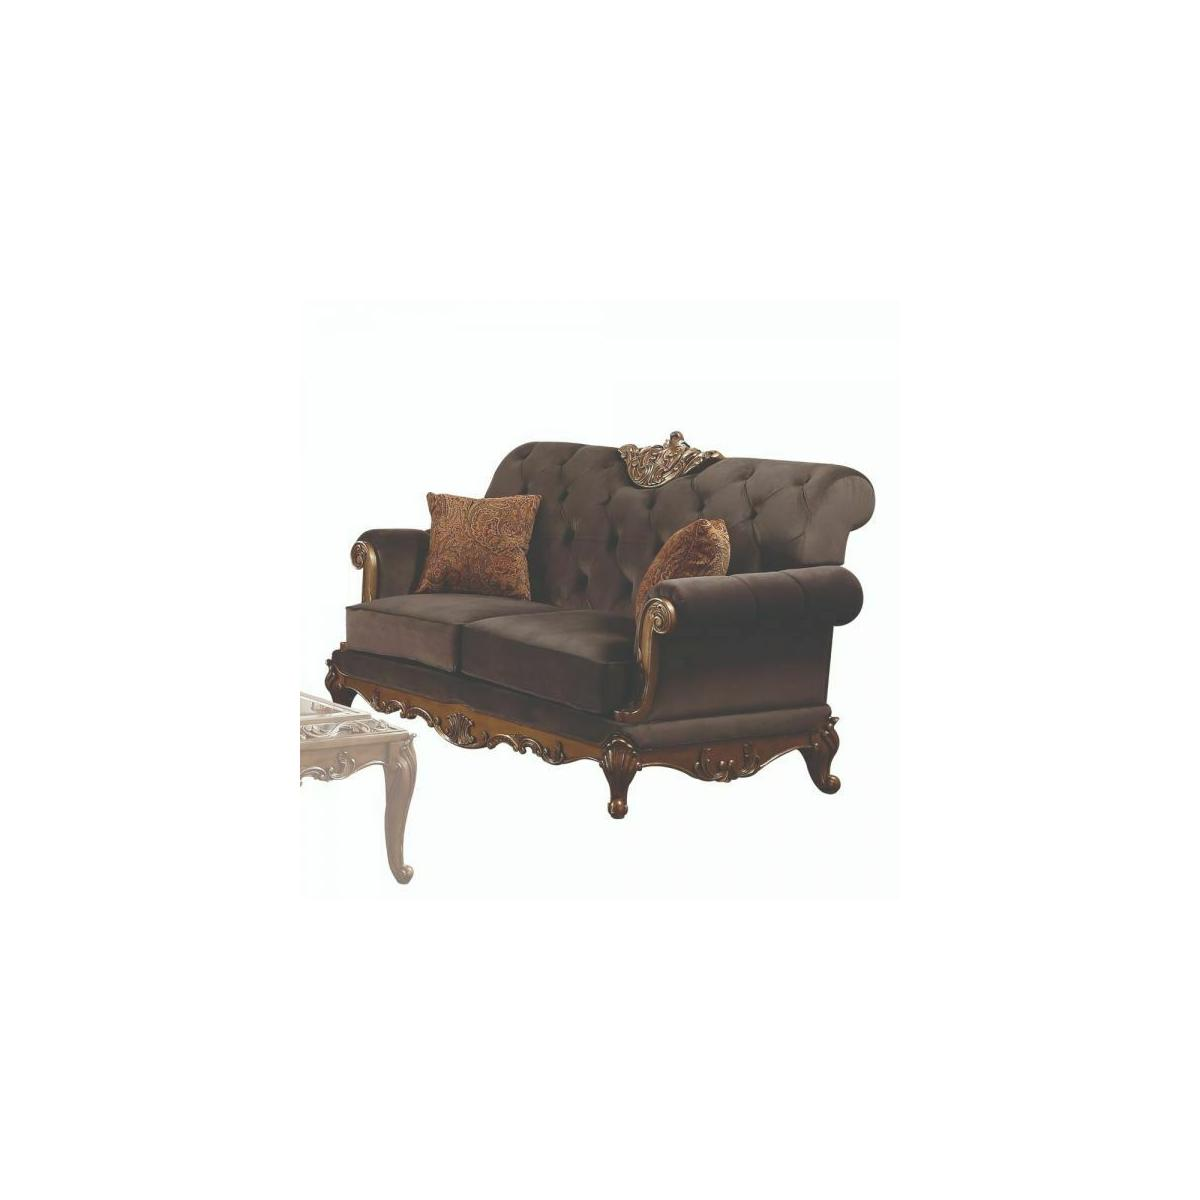 ACME Orianne Loveseat w/2 Pillows - 53796 - Charcoal Fabric & Antique Gold